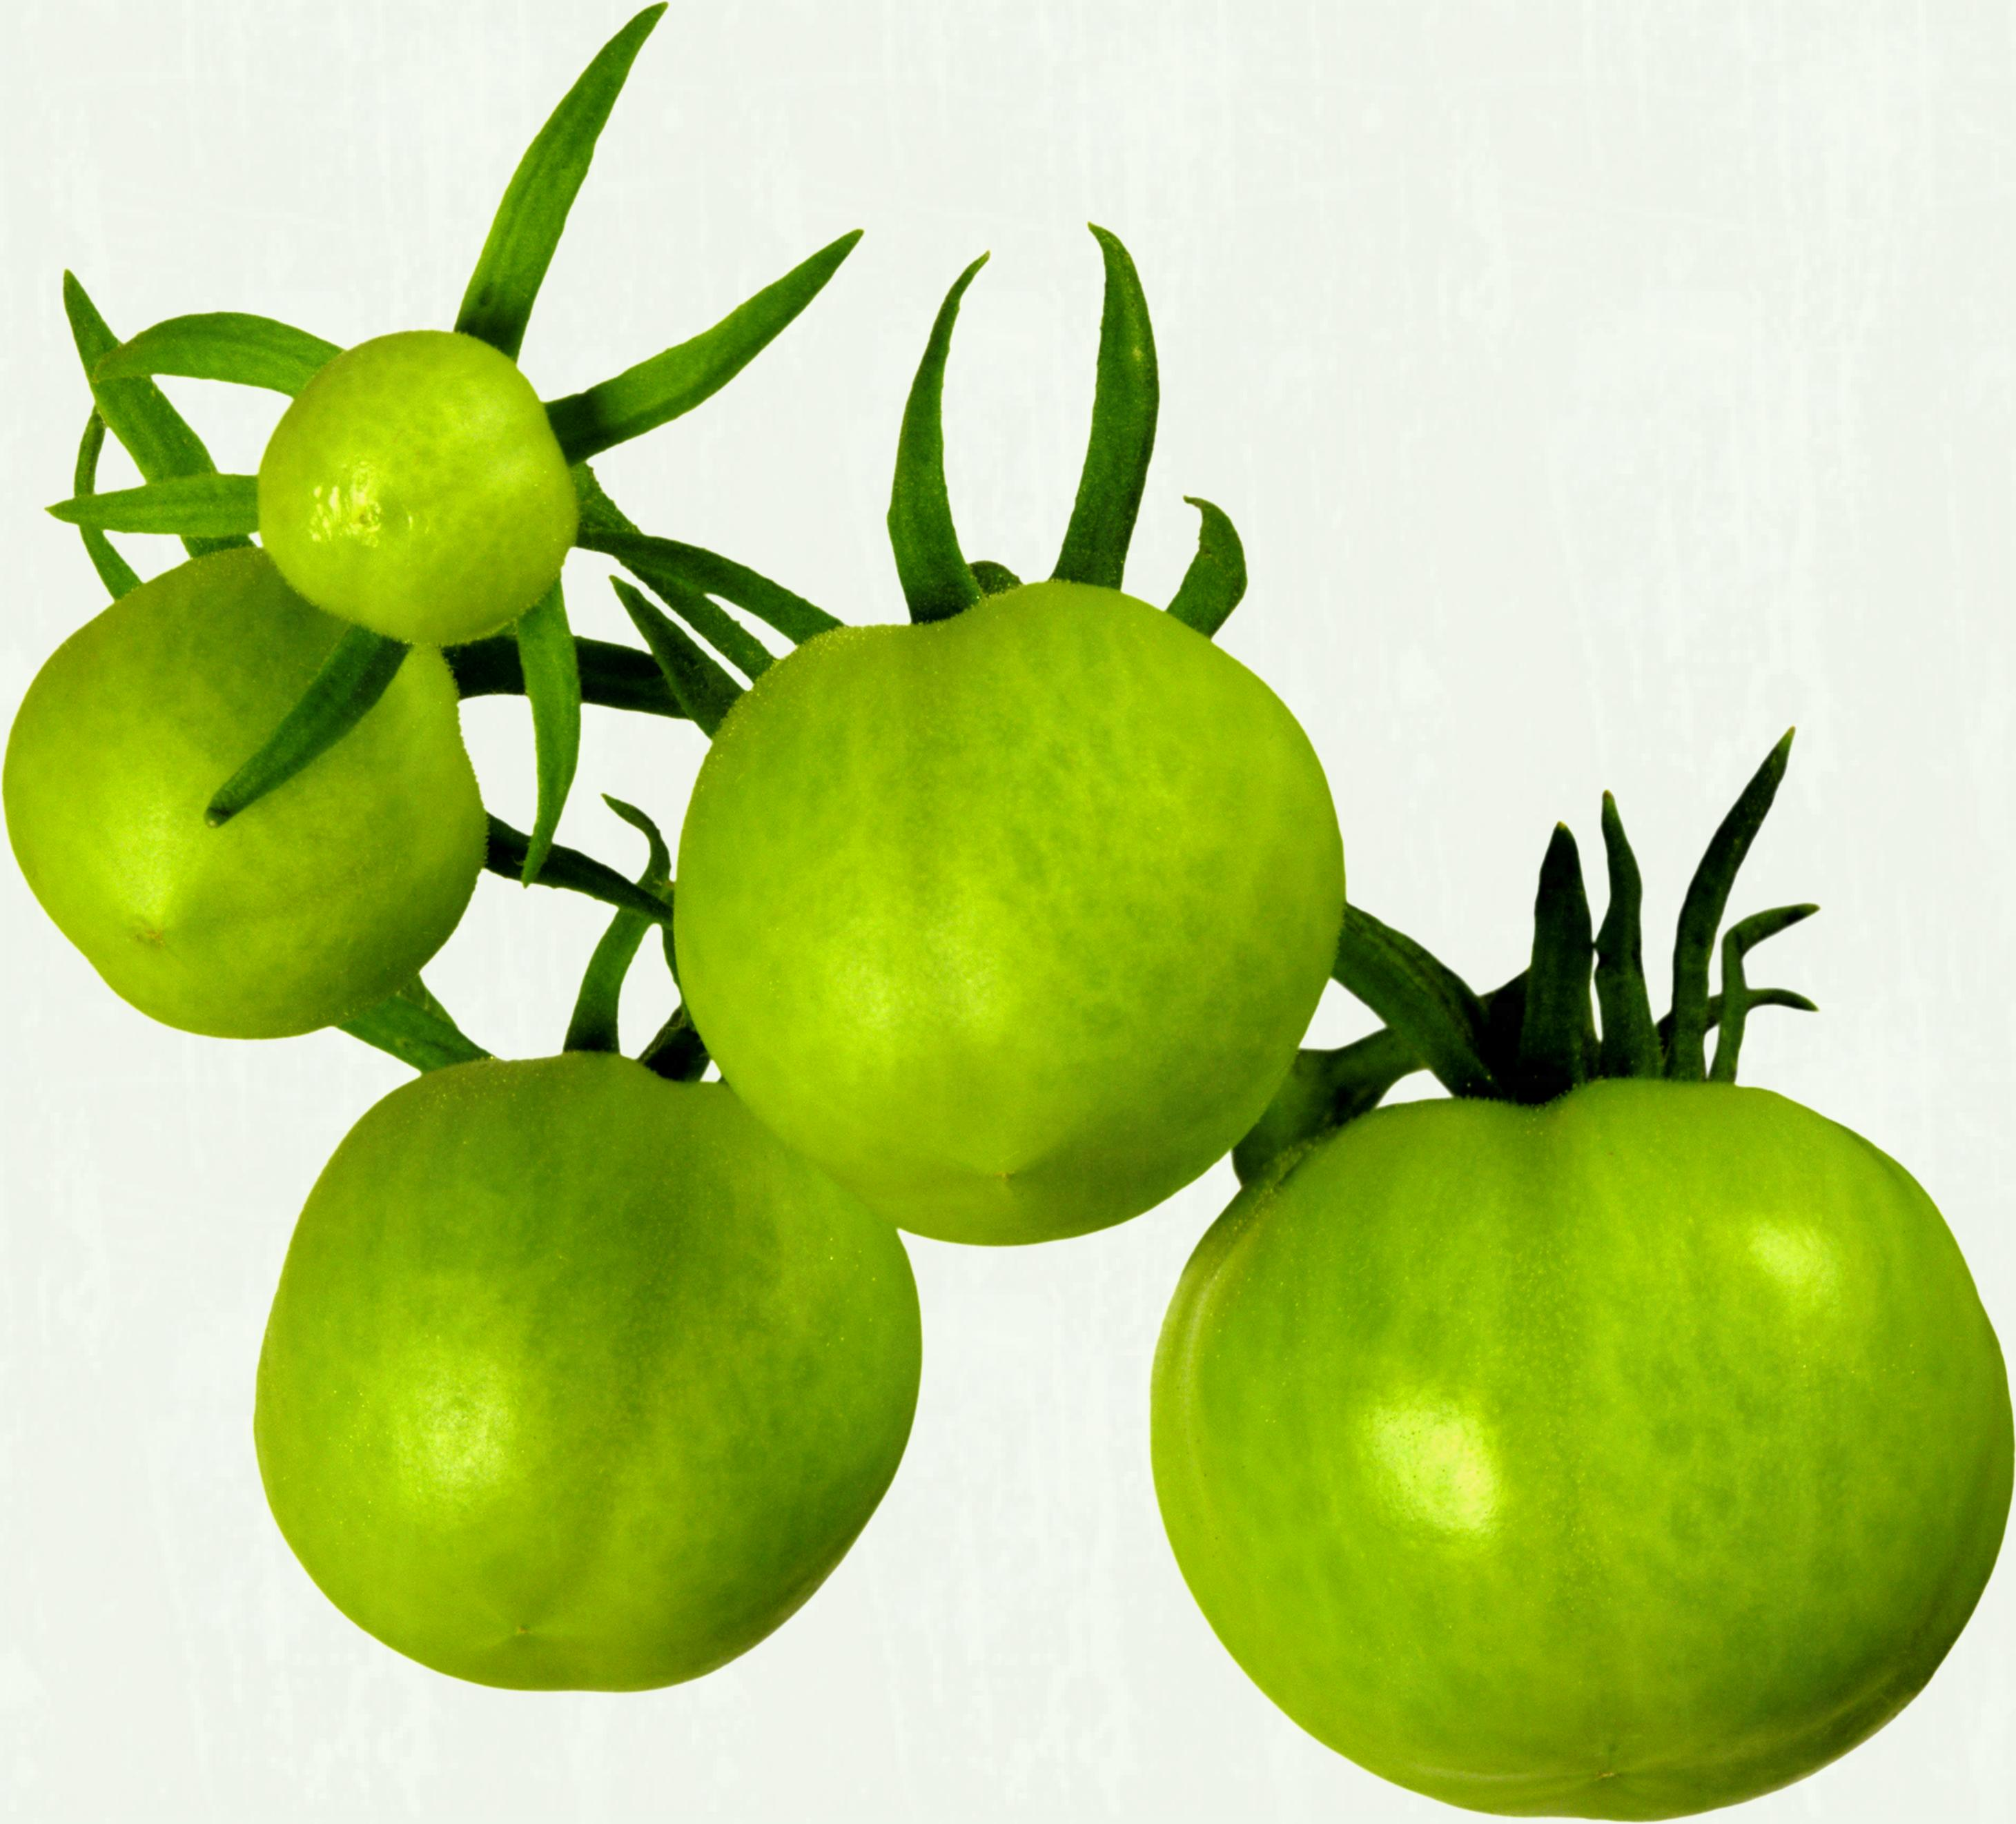 Tomatoes clipart green tomato. Png clipground office tips